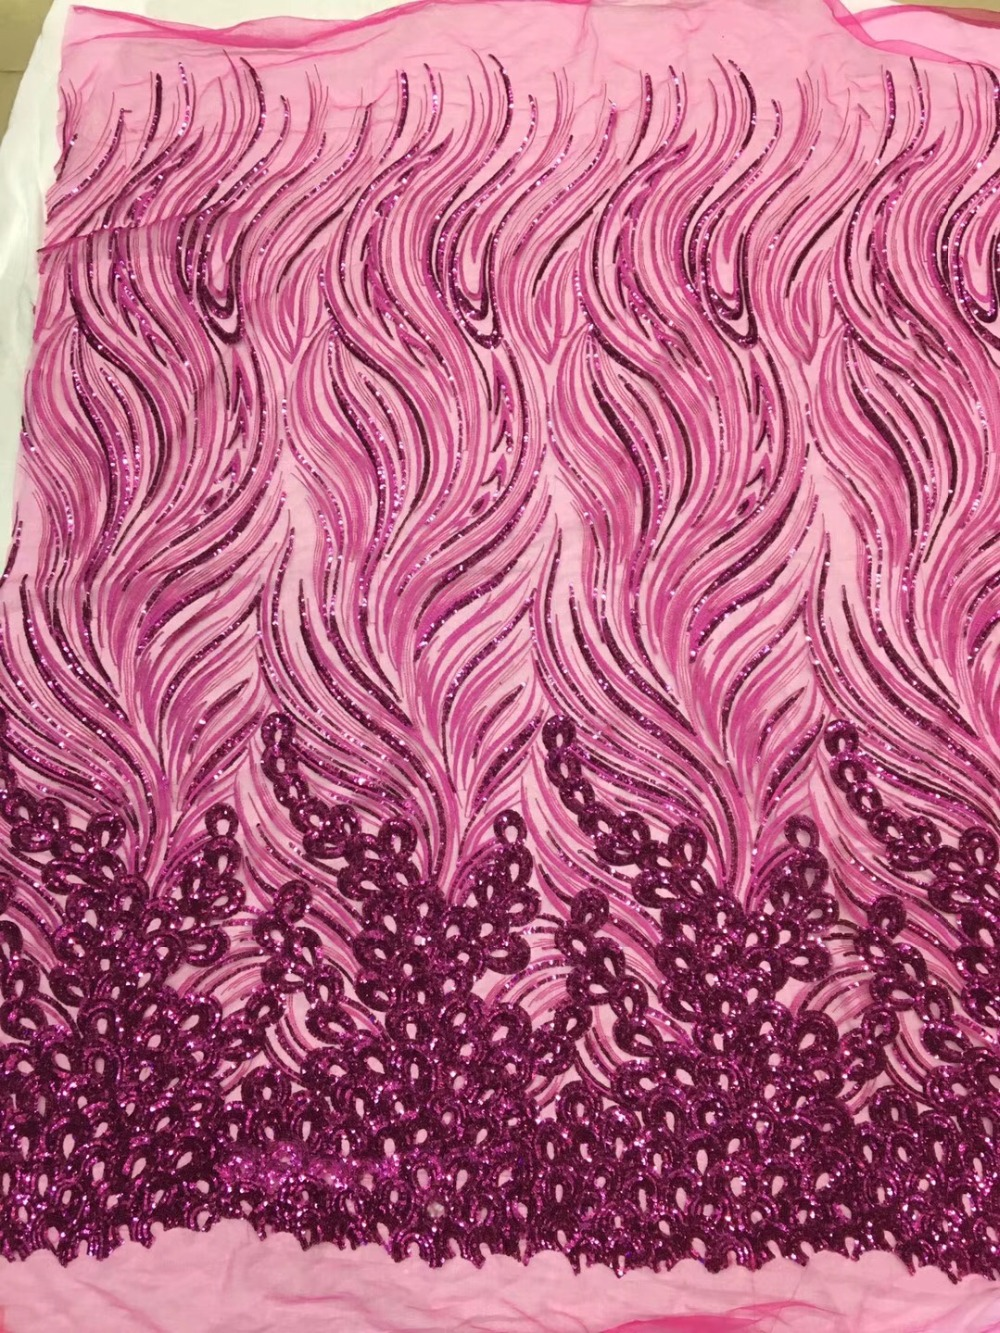 Sequin Lace Fabric Embroidered Tulle Fabric Nigerian Lace Fabric 2018 High Quality Lace For African Women PartySequin Lace Fabric Embroidered Tulle Fabric Nigerian Lace Fabric 2018 High Quality Lace For African Women Party